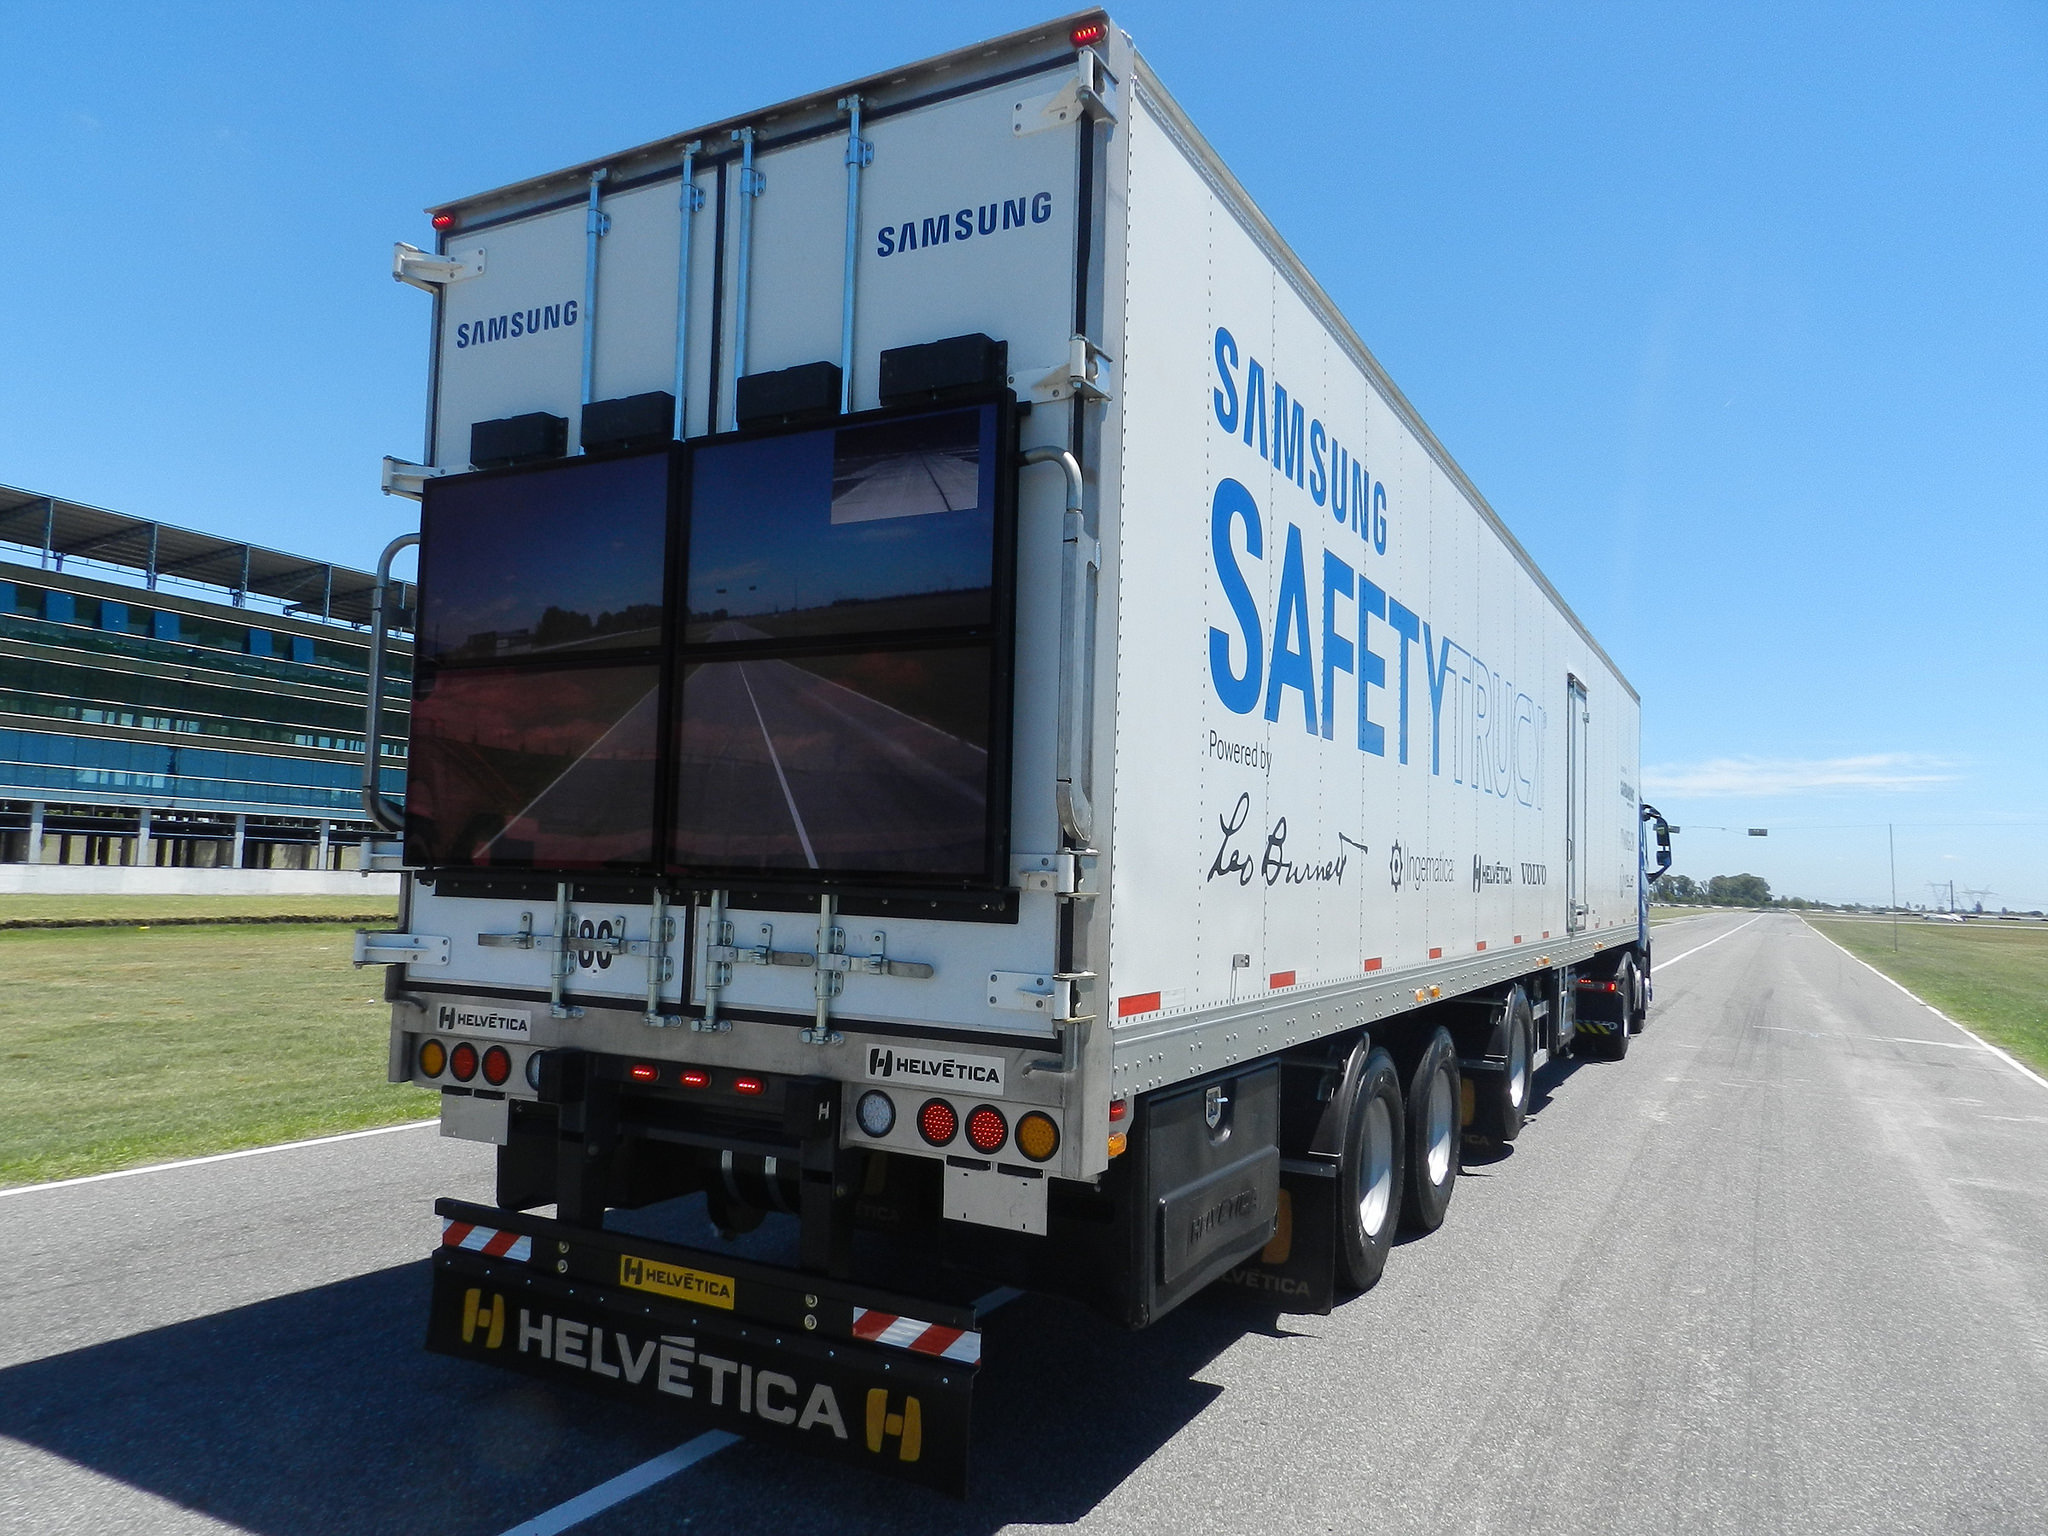 Samsung's Safety Truck concept starts testing in Argentina